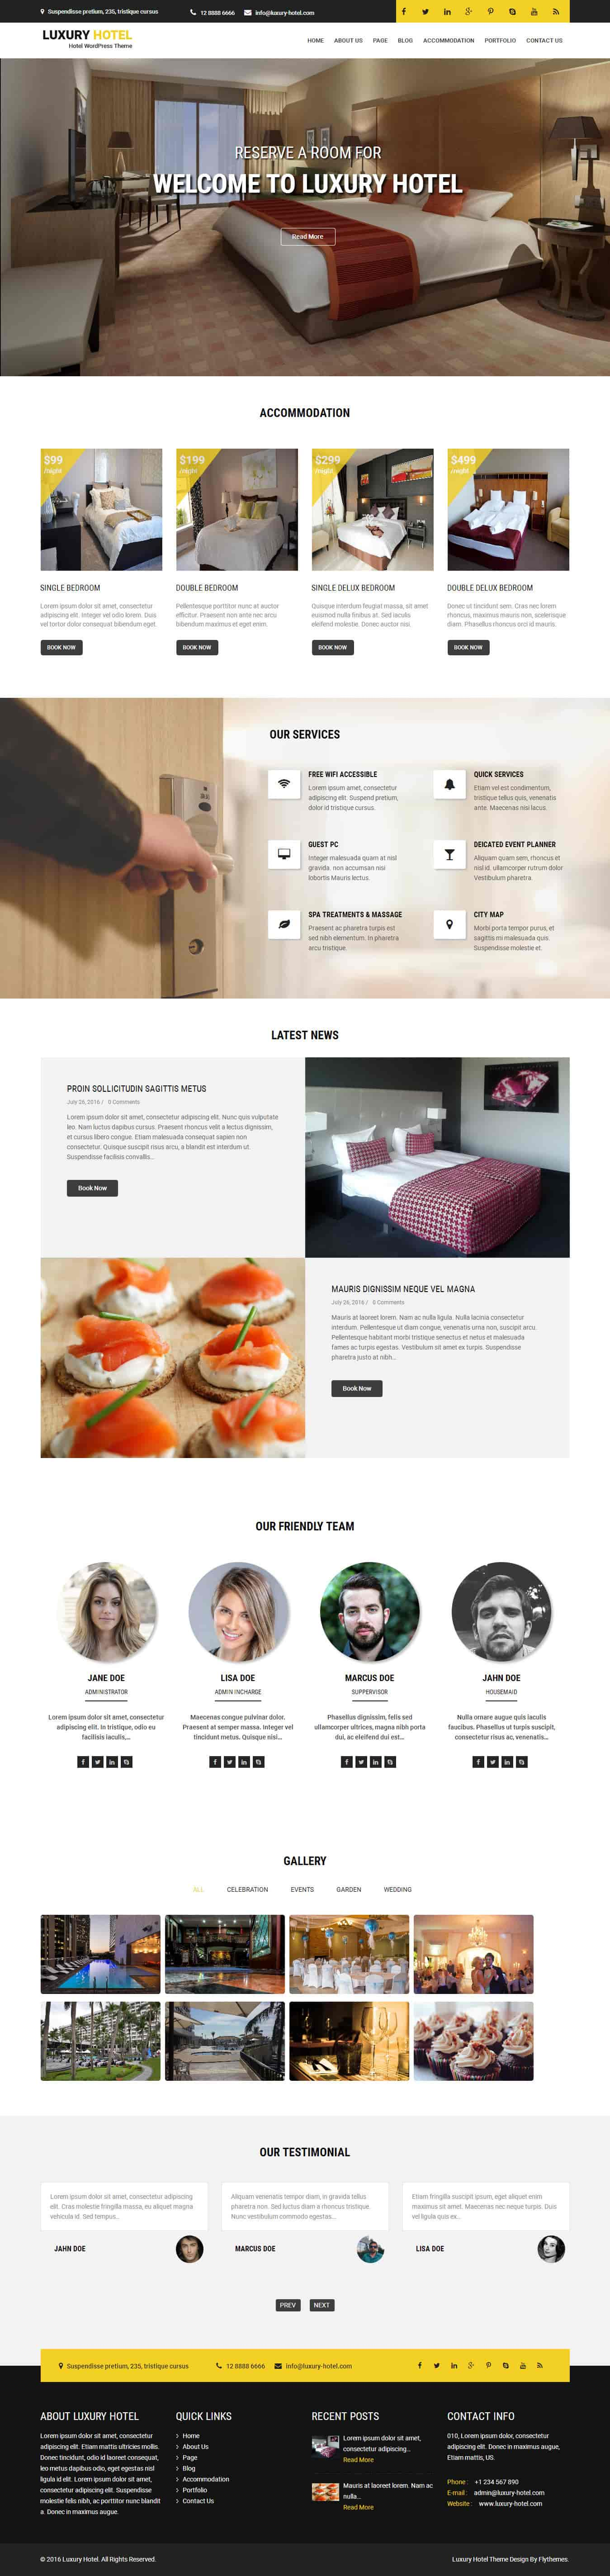 luxury-hotel-wordpress-theme